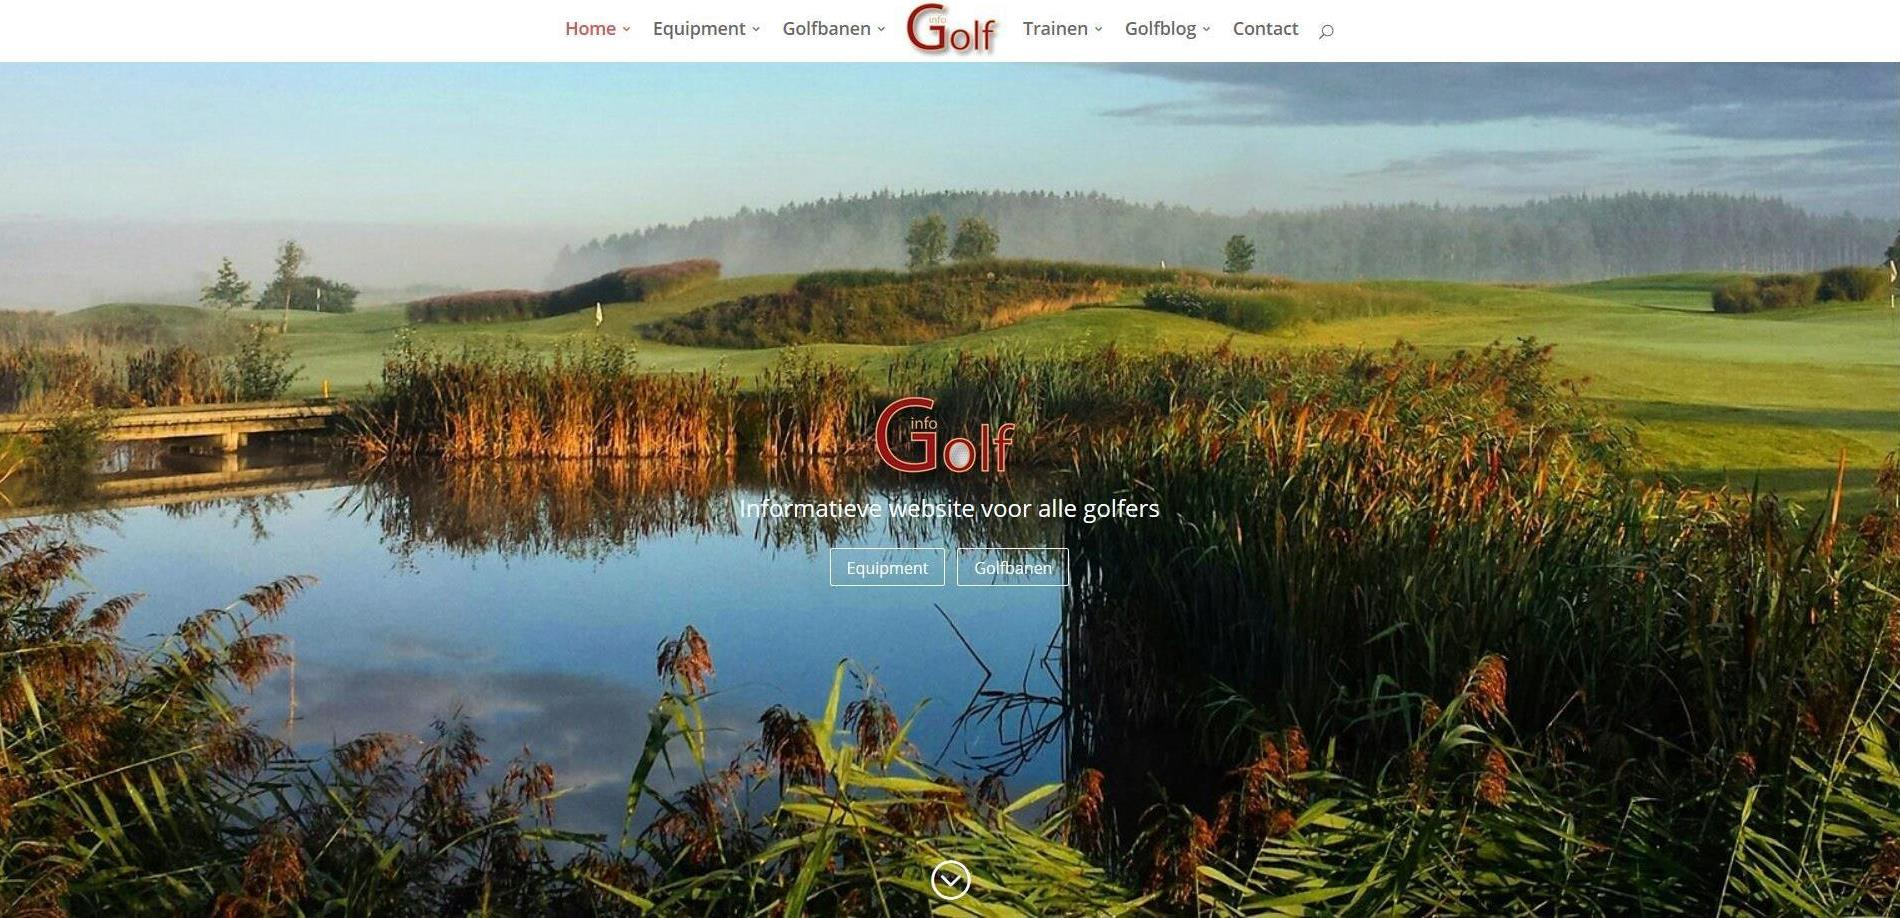 Website Info Golf